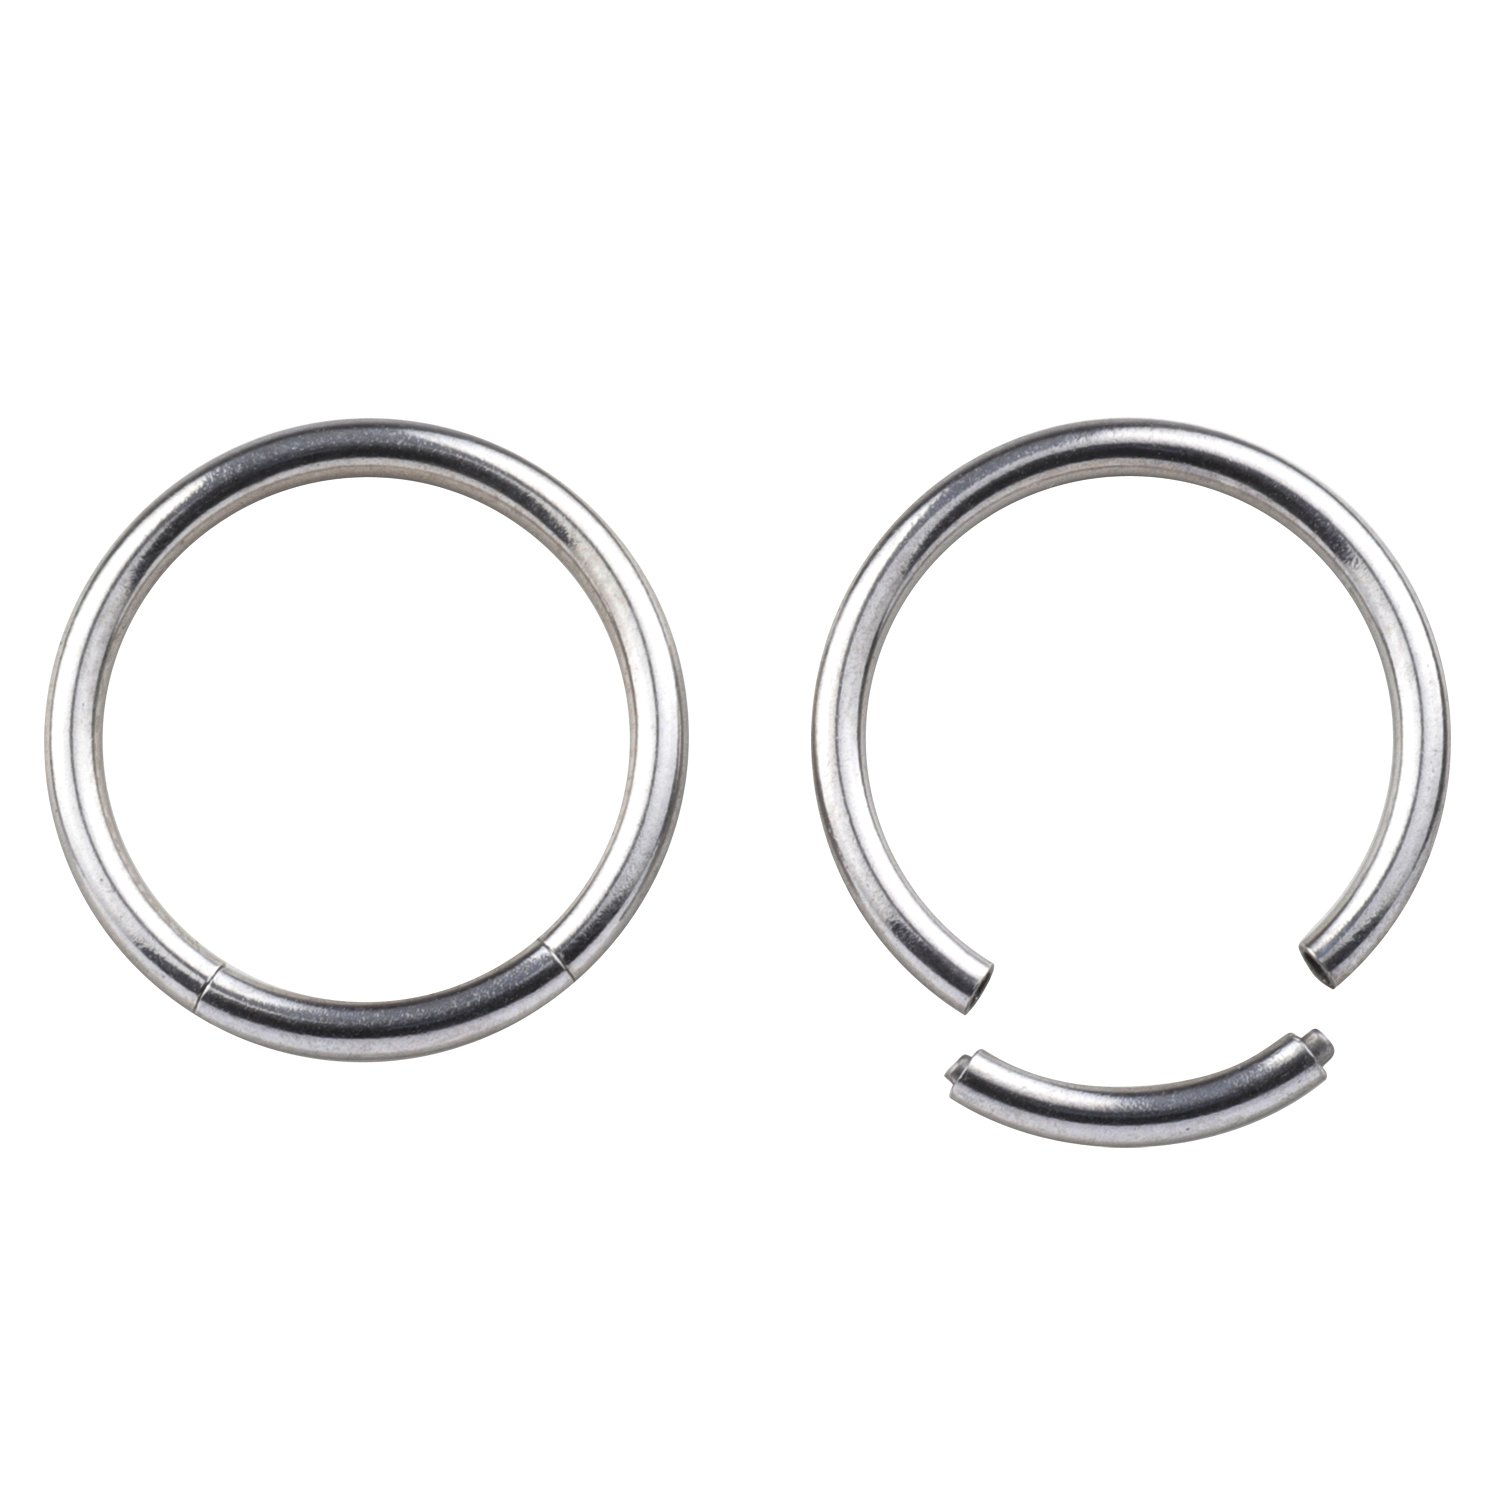 Great my shop 16G Surgical Stainless Steel Seamless Septum Clicker Ring Lip Helix Tragus Cartilage Earrings Nose Rings Segment Seamless Nose Hoop Pirecing 8mm